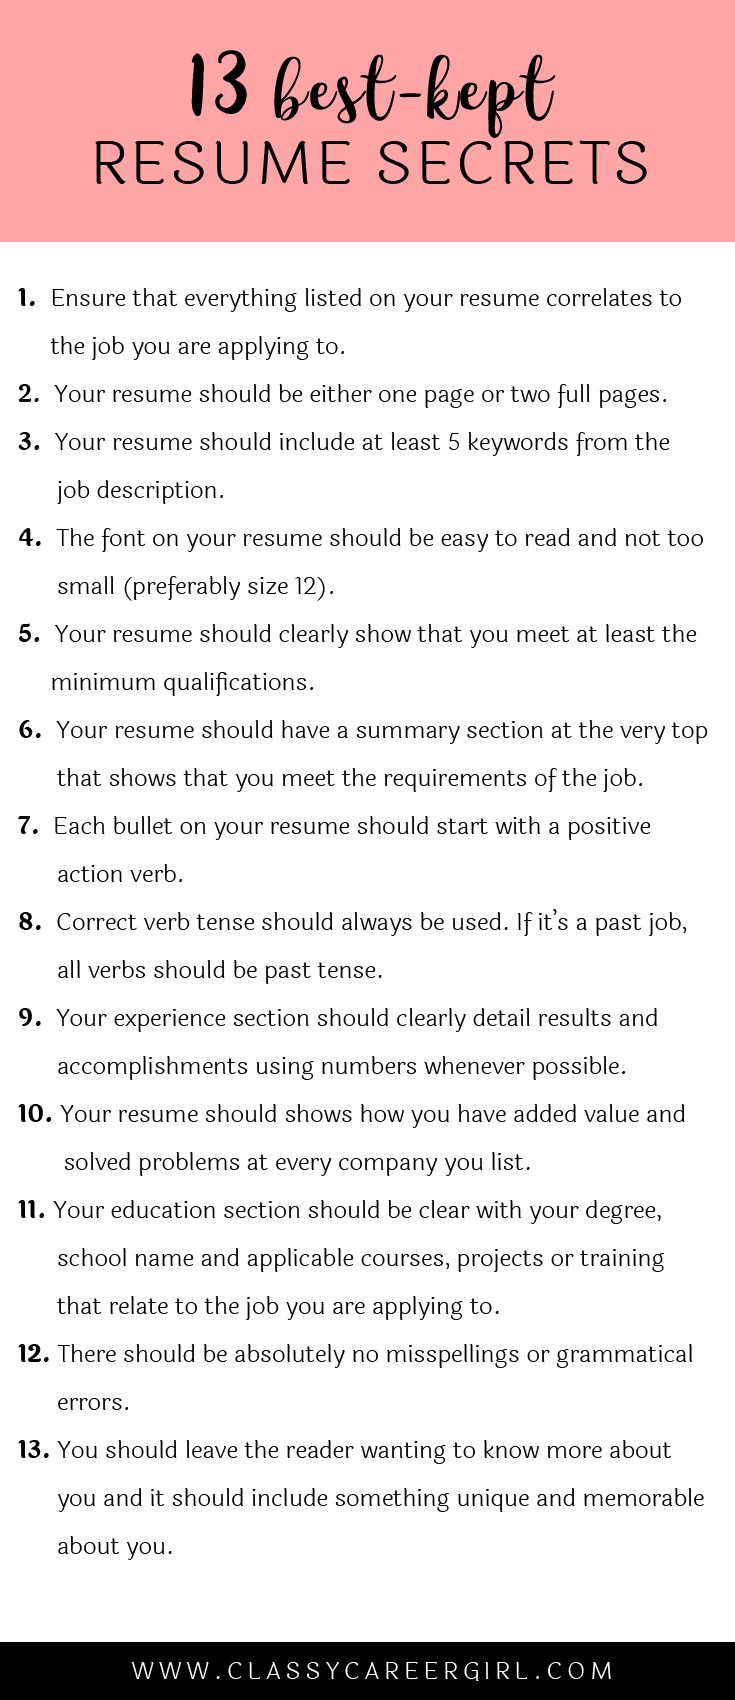 Opposenewapstandardsus  Picturesque  Ideas About Resume On Pinterest  Cv Format Resume Cv And  With Exquisite Some Hiring Managers Will Toss Your Resume Out If You Dont Know These  With Awesome Example Of Job Resume Also Executive Summary For Resume In Addition Shift Manager Resume And Rn Resume Templates As Well As Narrative Resume Additionally Example Nursing Resume From Pinterestcom With Opposenewapstandardsus  Exquisite  Ideas About Resume On Pinterest  Cv Format Resume Cv And  With Awesome Some Hiring Managers Will Toss Your Resume Out If You Dont Know These  And Picturesque Example Of Job Resume Also Executive Summary For Resume In Addition Shift Manager Resume From Pinterestcom